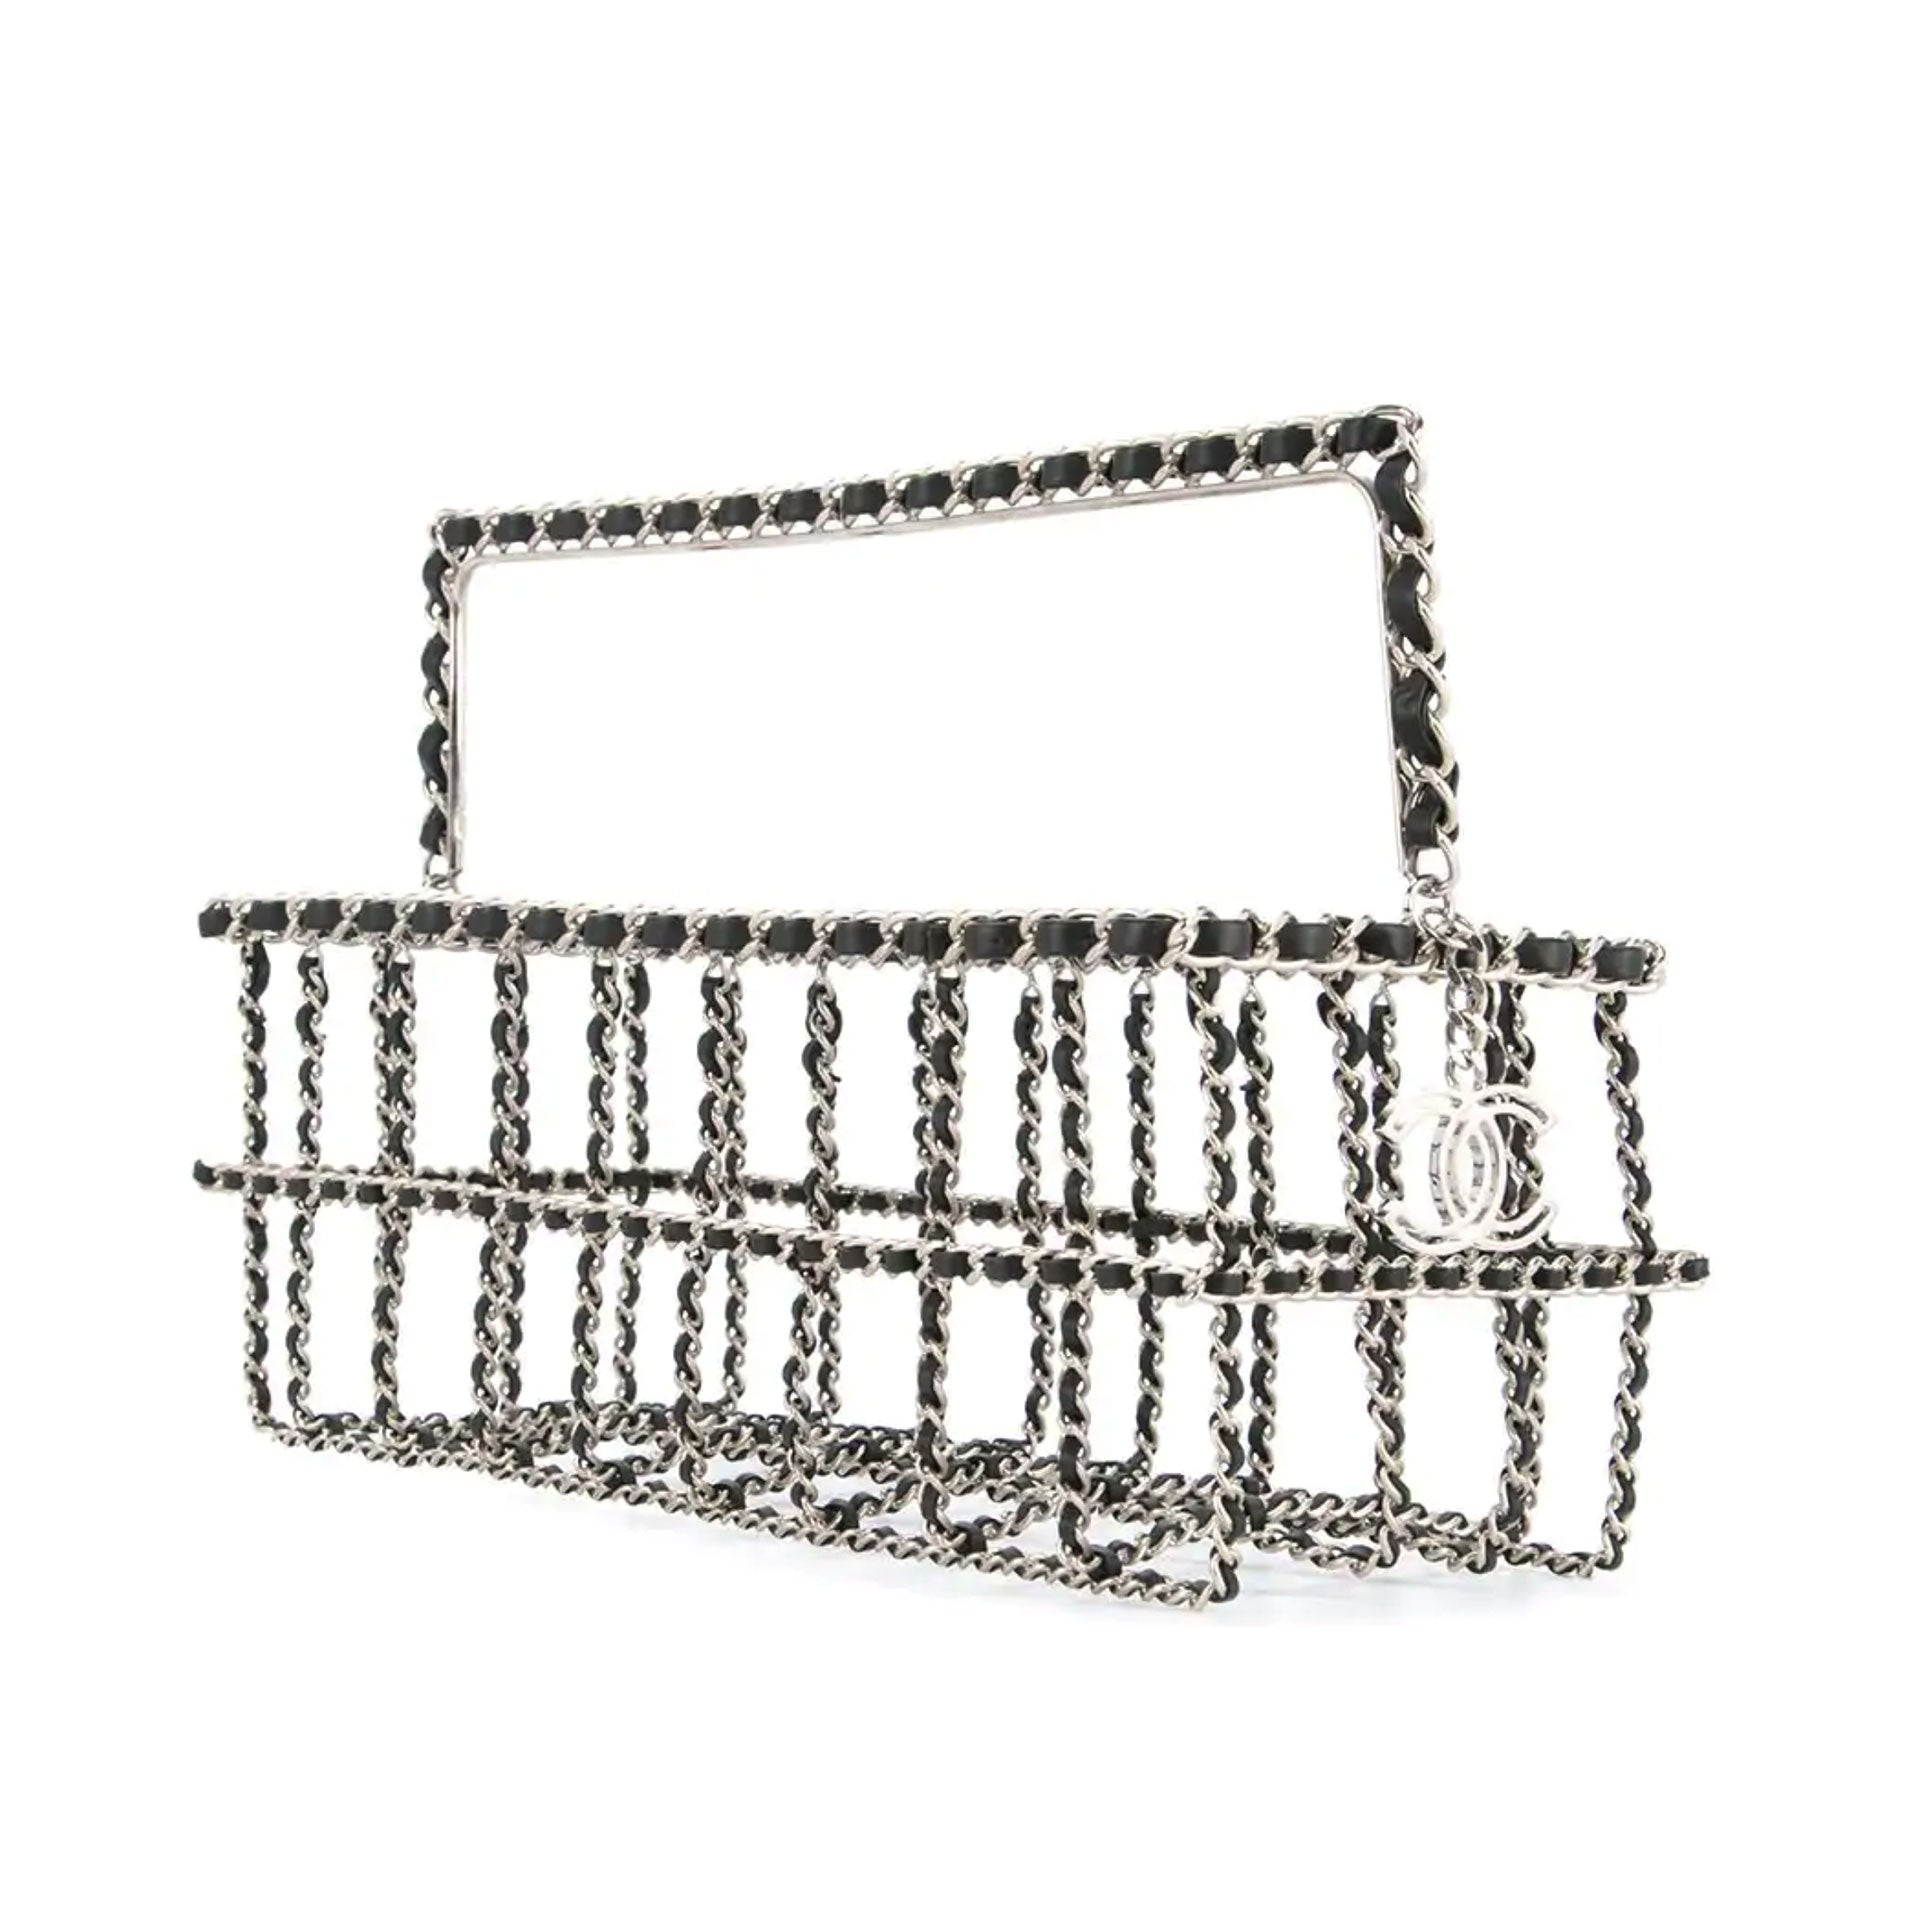 Chanel Runway Supermarket Grocery Basket Chain Tote